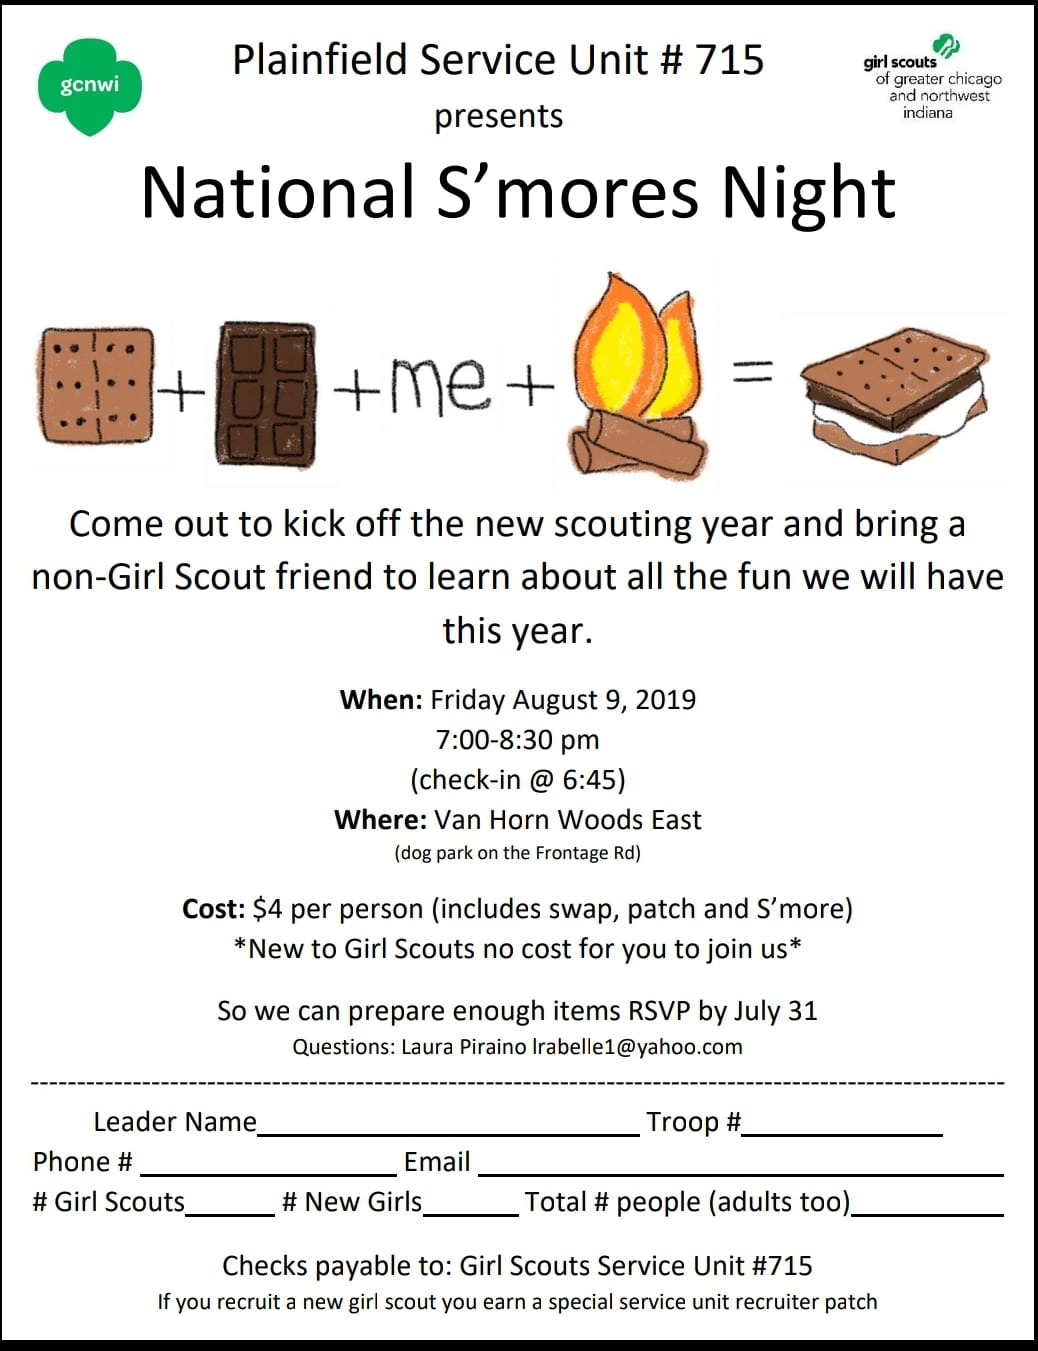 National S'mores Night